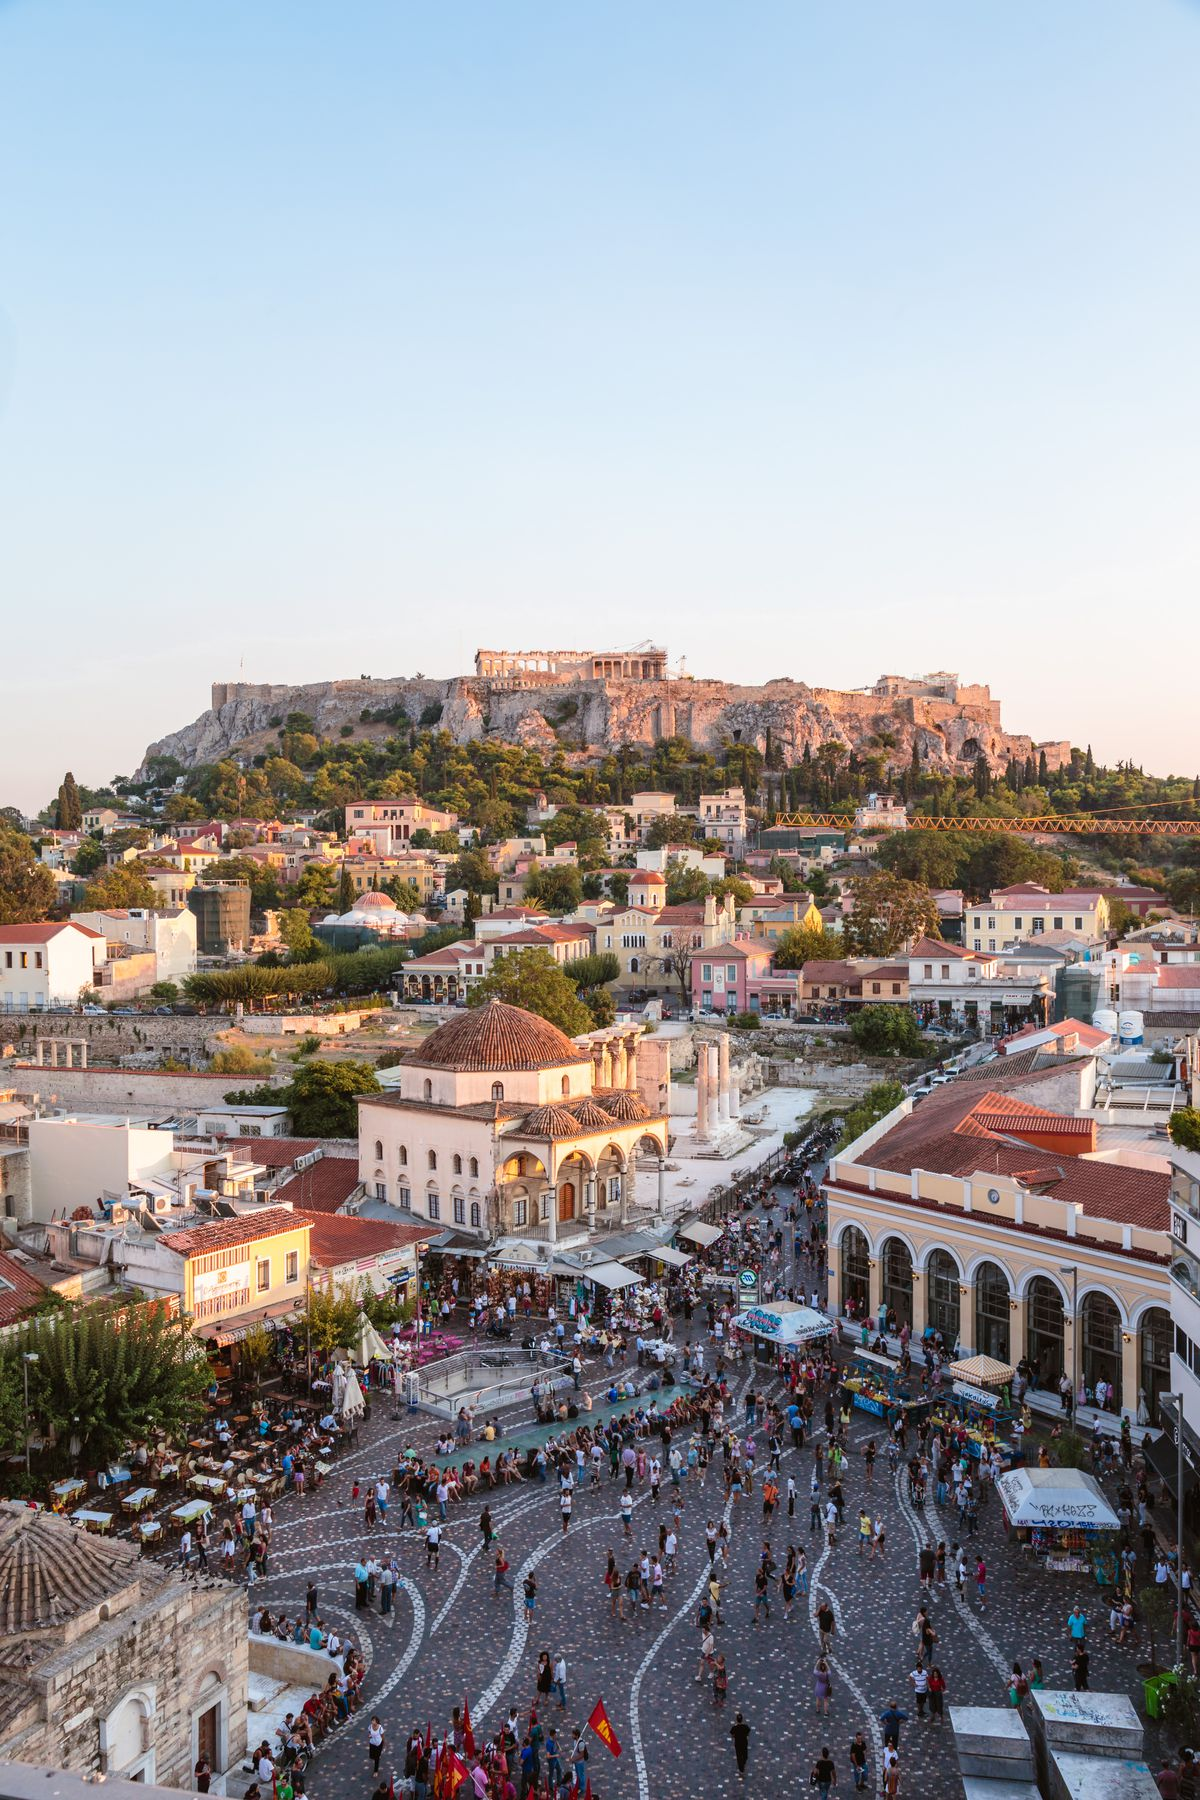 An aerial view of Athens, Greece. There is a pedestrian plaza surrounded by various buildings. In the distance is a mountain with historic buildings.